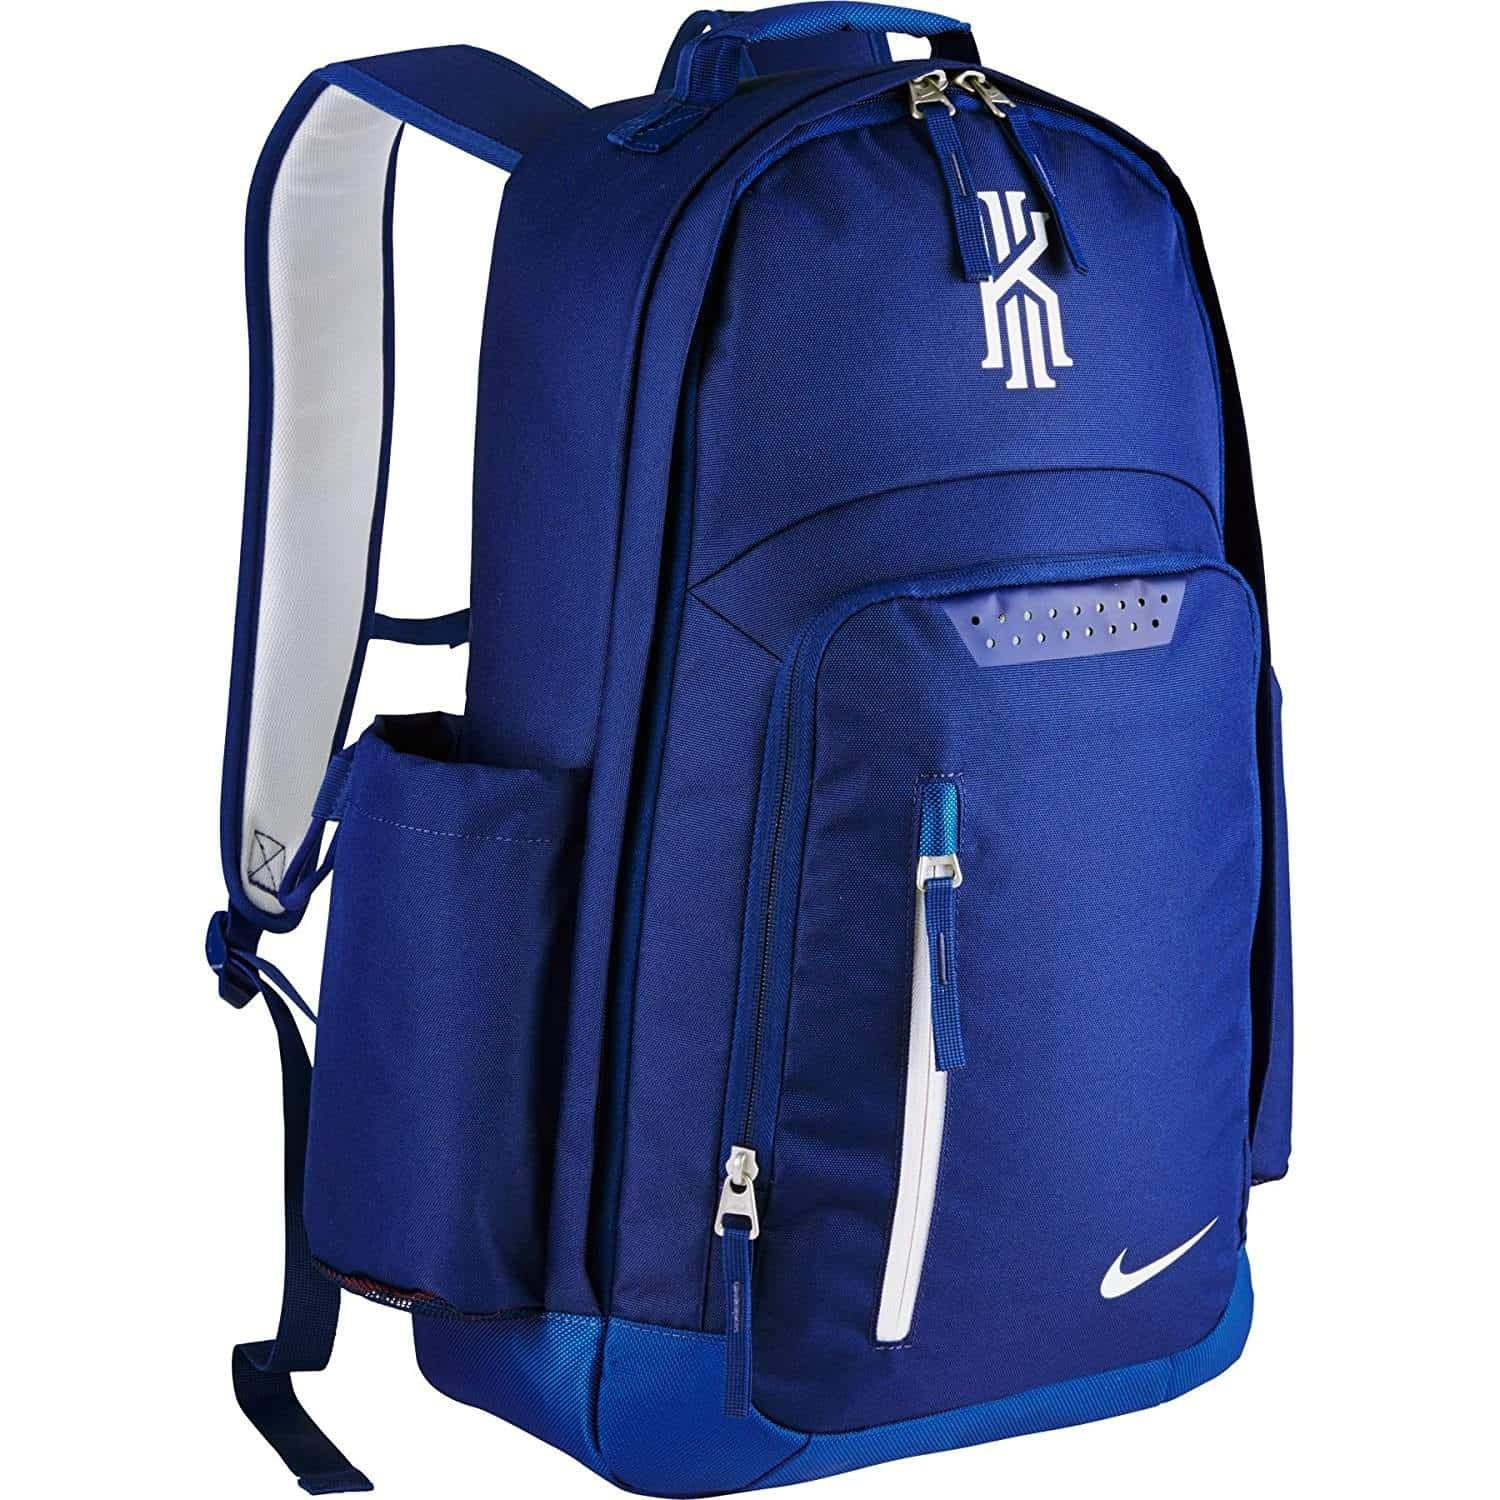 Basura cerveza negra sombra  Buy Nike Kyrie Backpack Deep Royal Blue/White, Features, Price, Reviews  Online in India - Justdial